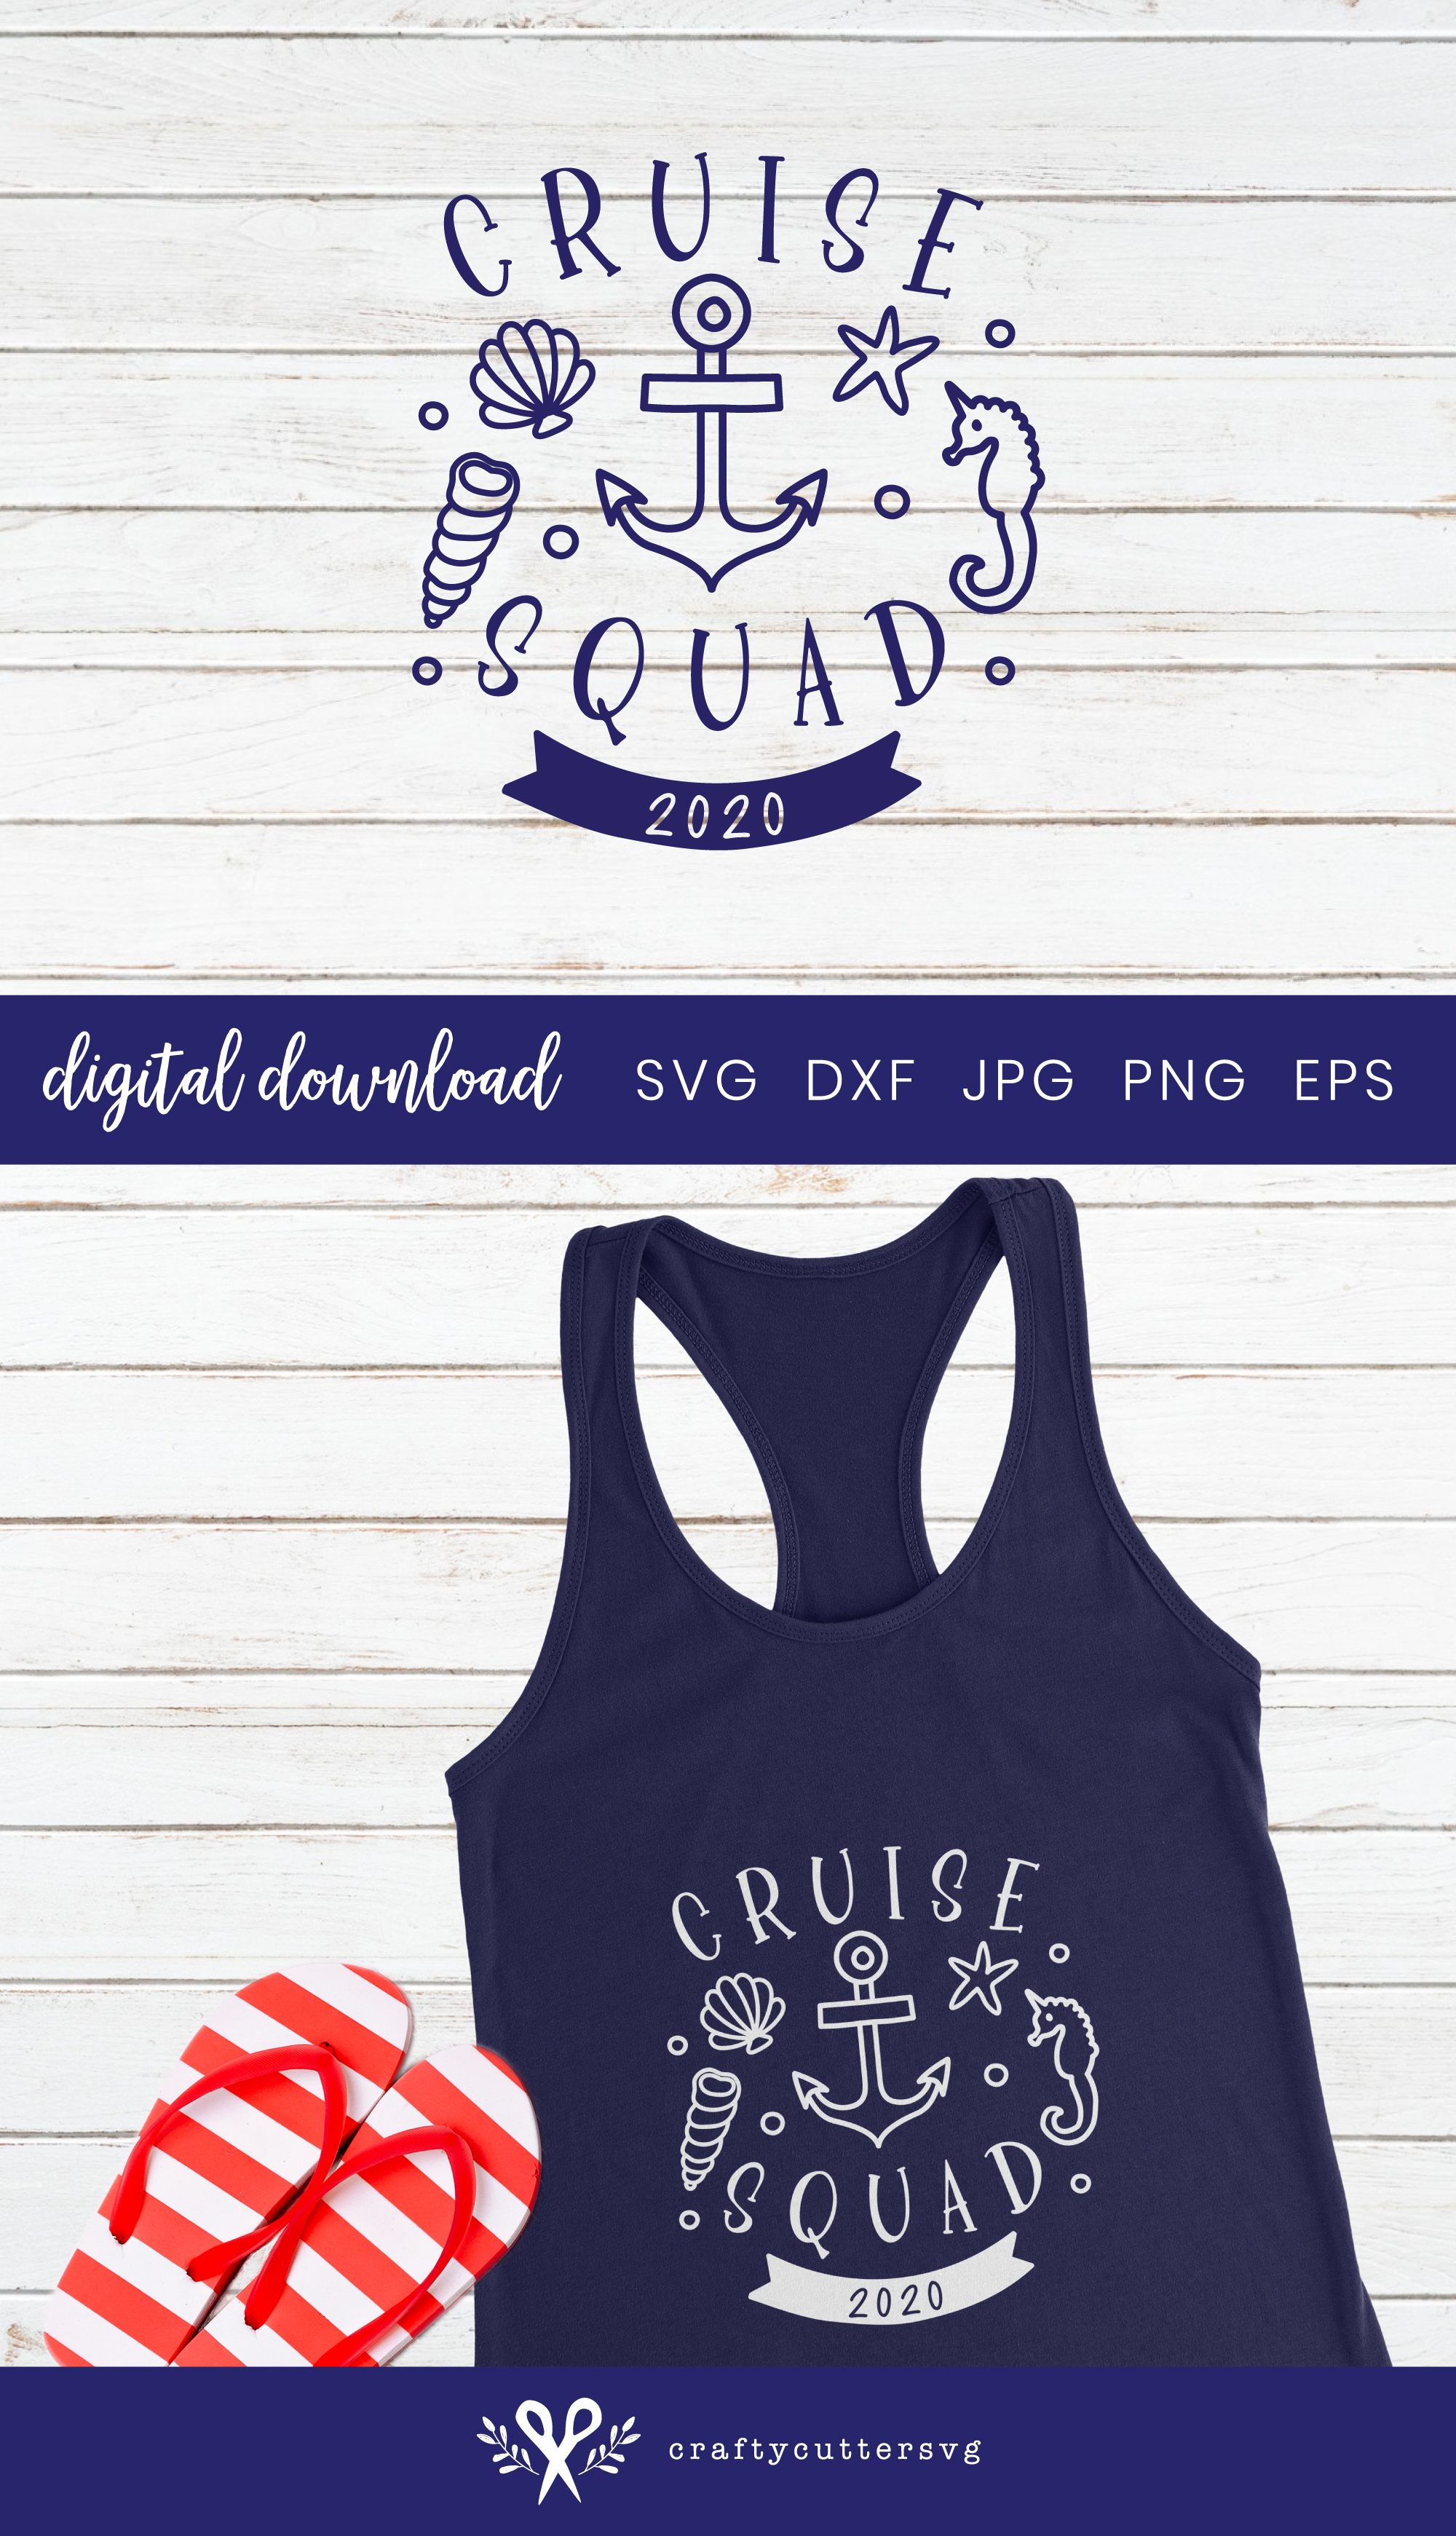 Cruise squad 2020 Svg Cut File Cocktail Shell Anchor Clipart example image 3